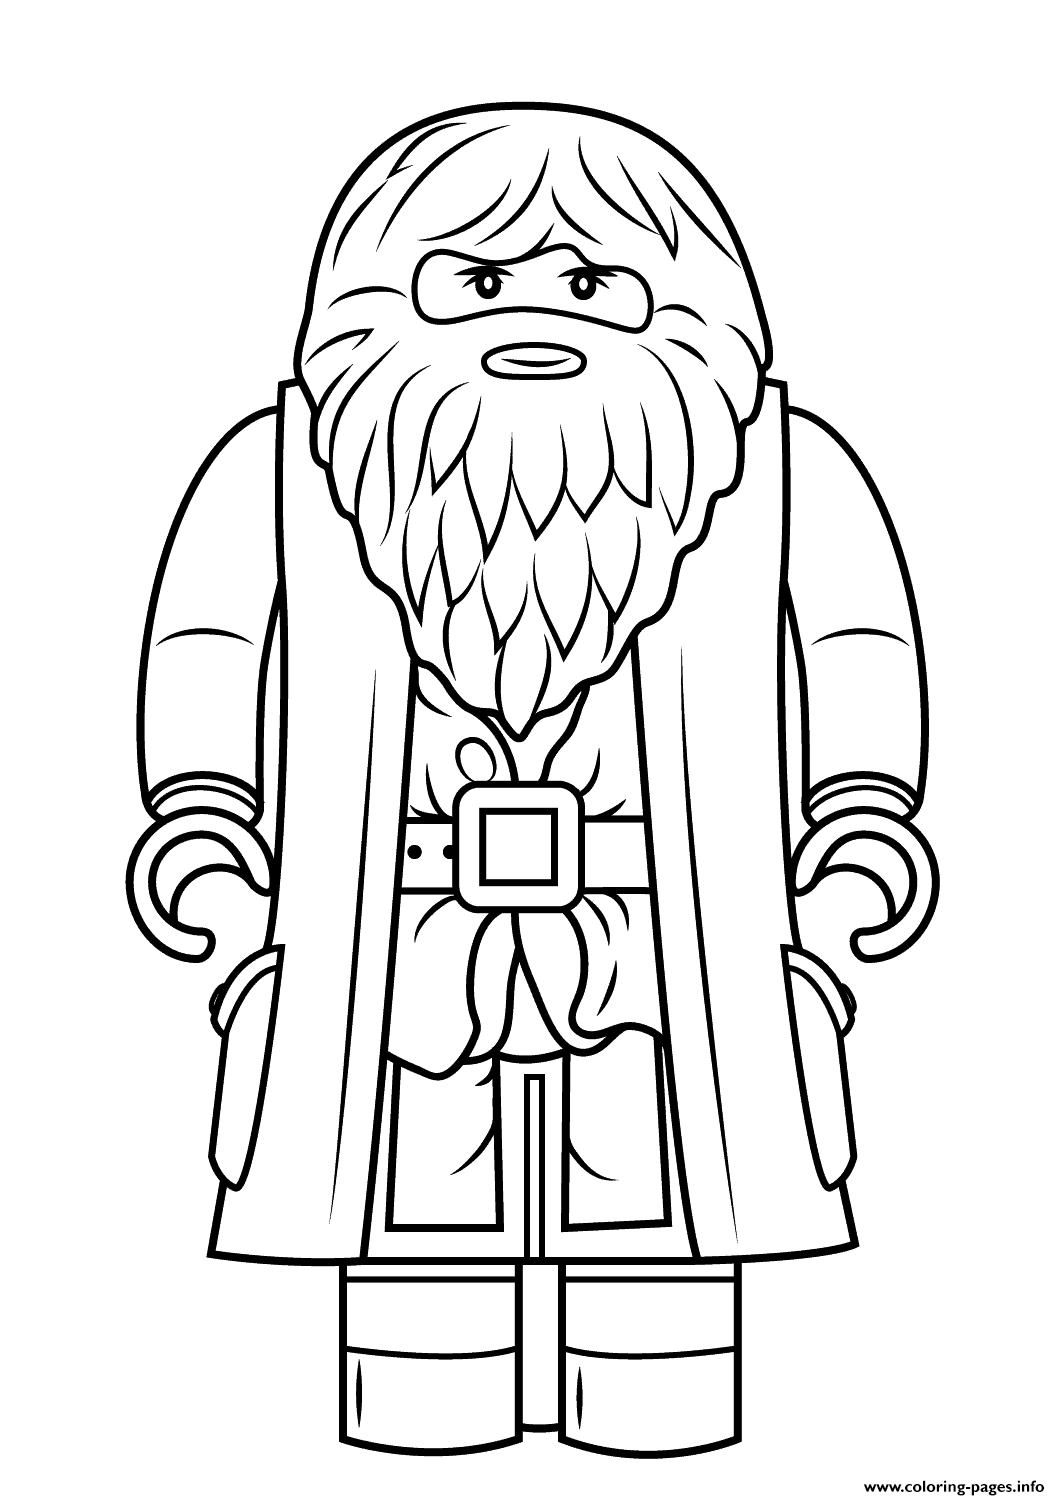 lego minifig coloring pages - photo#9